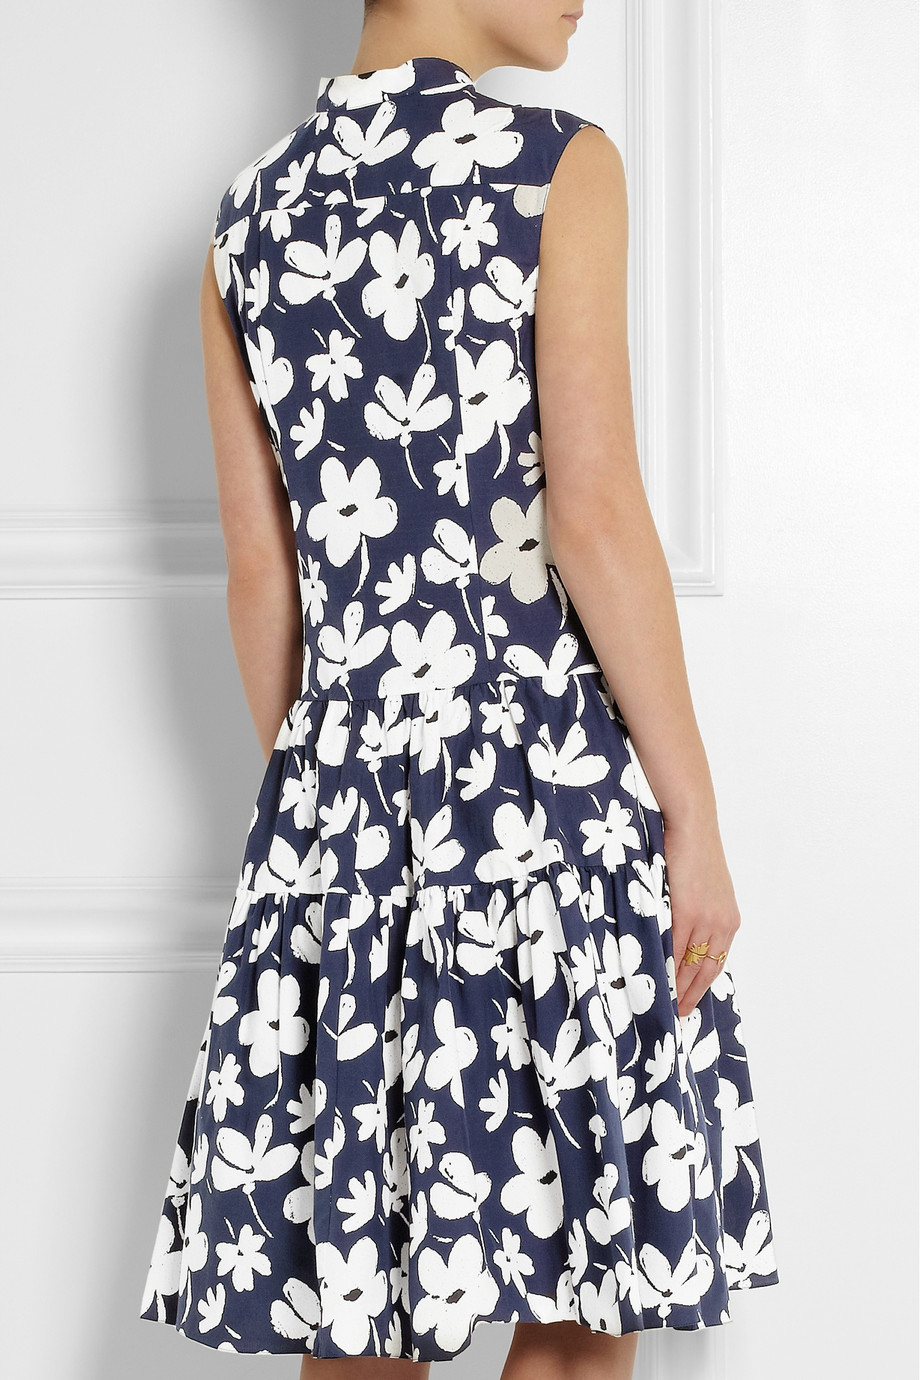 Marni Floral Print Dress In Blue Lyst